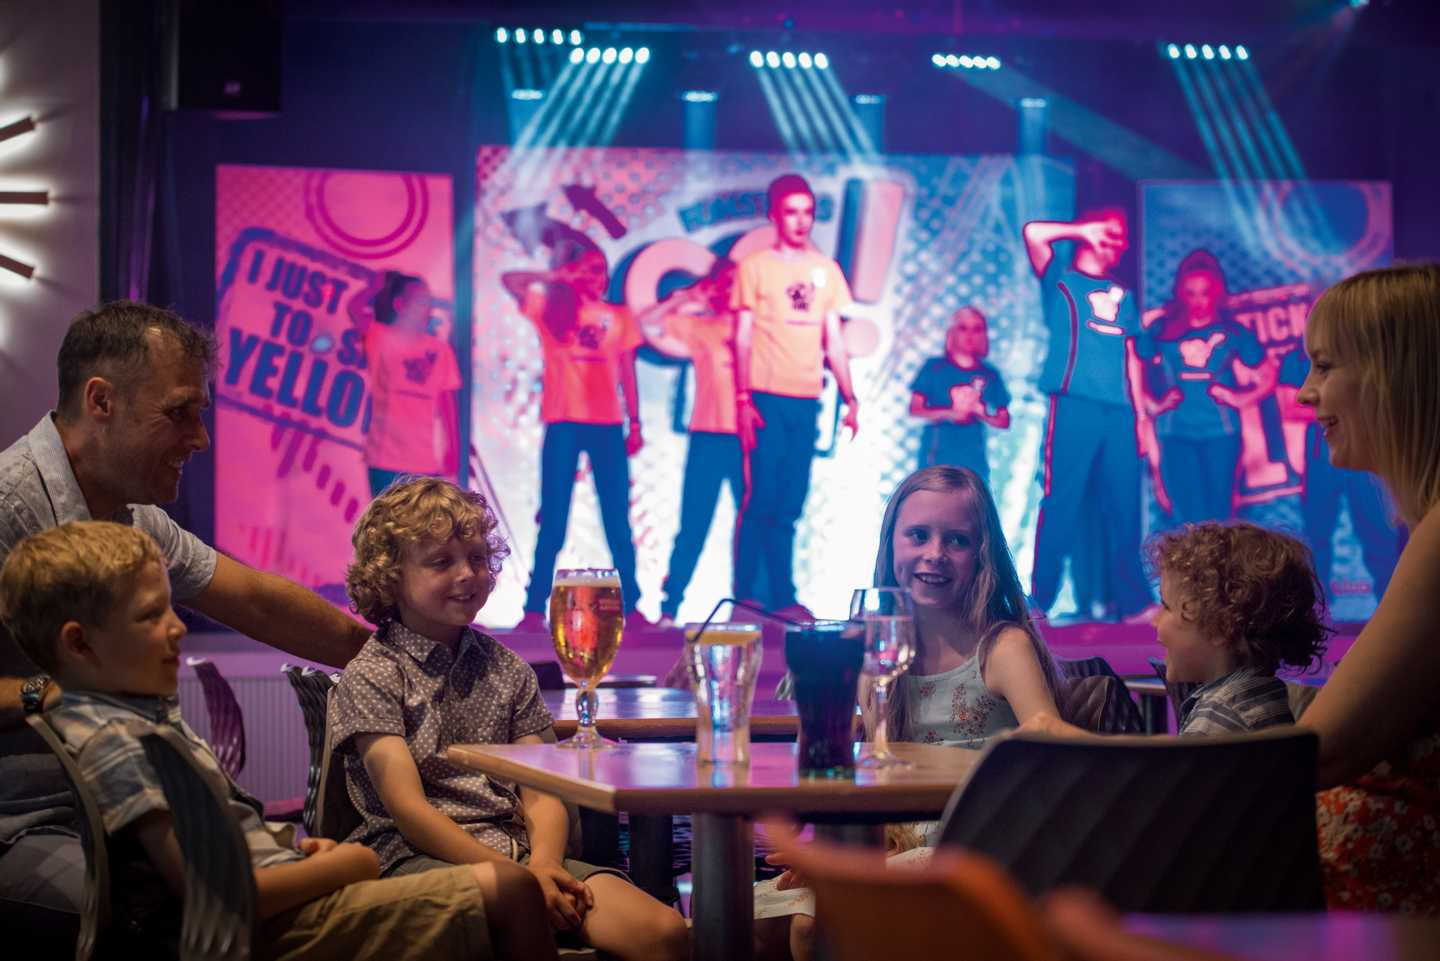 A family enjoying the entertainment in the ShowBar